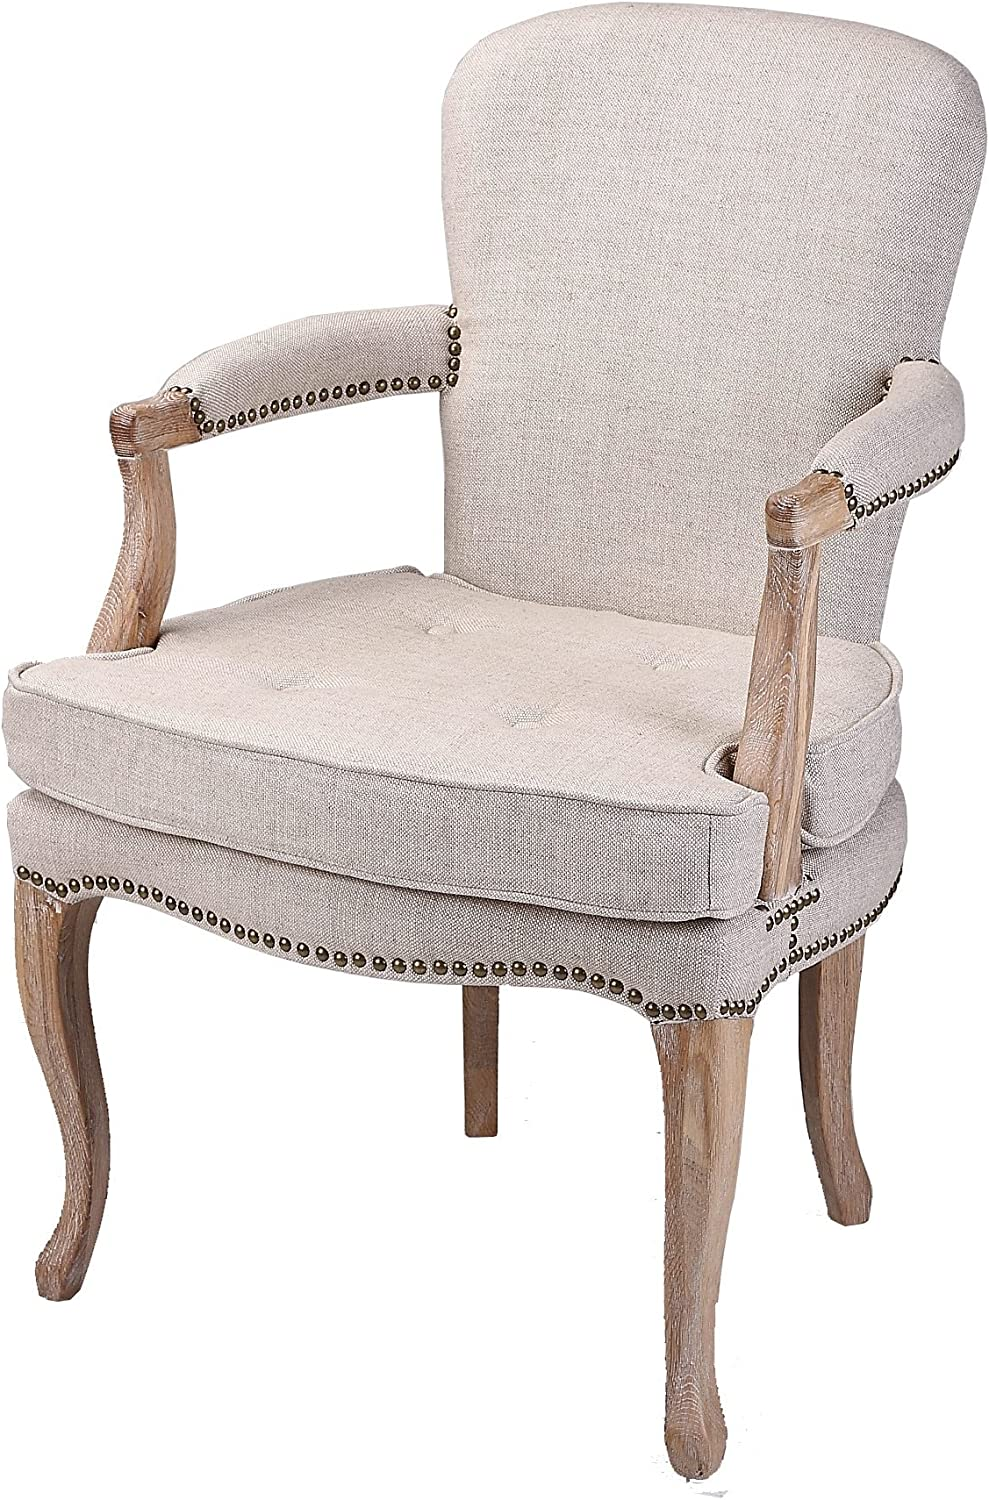 Armchair with Bronze Studs 100% Natural Linen Fabric Solid Oak Timber Frame Cushioned arms